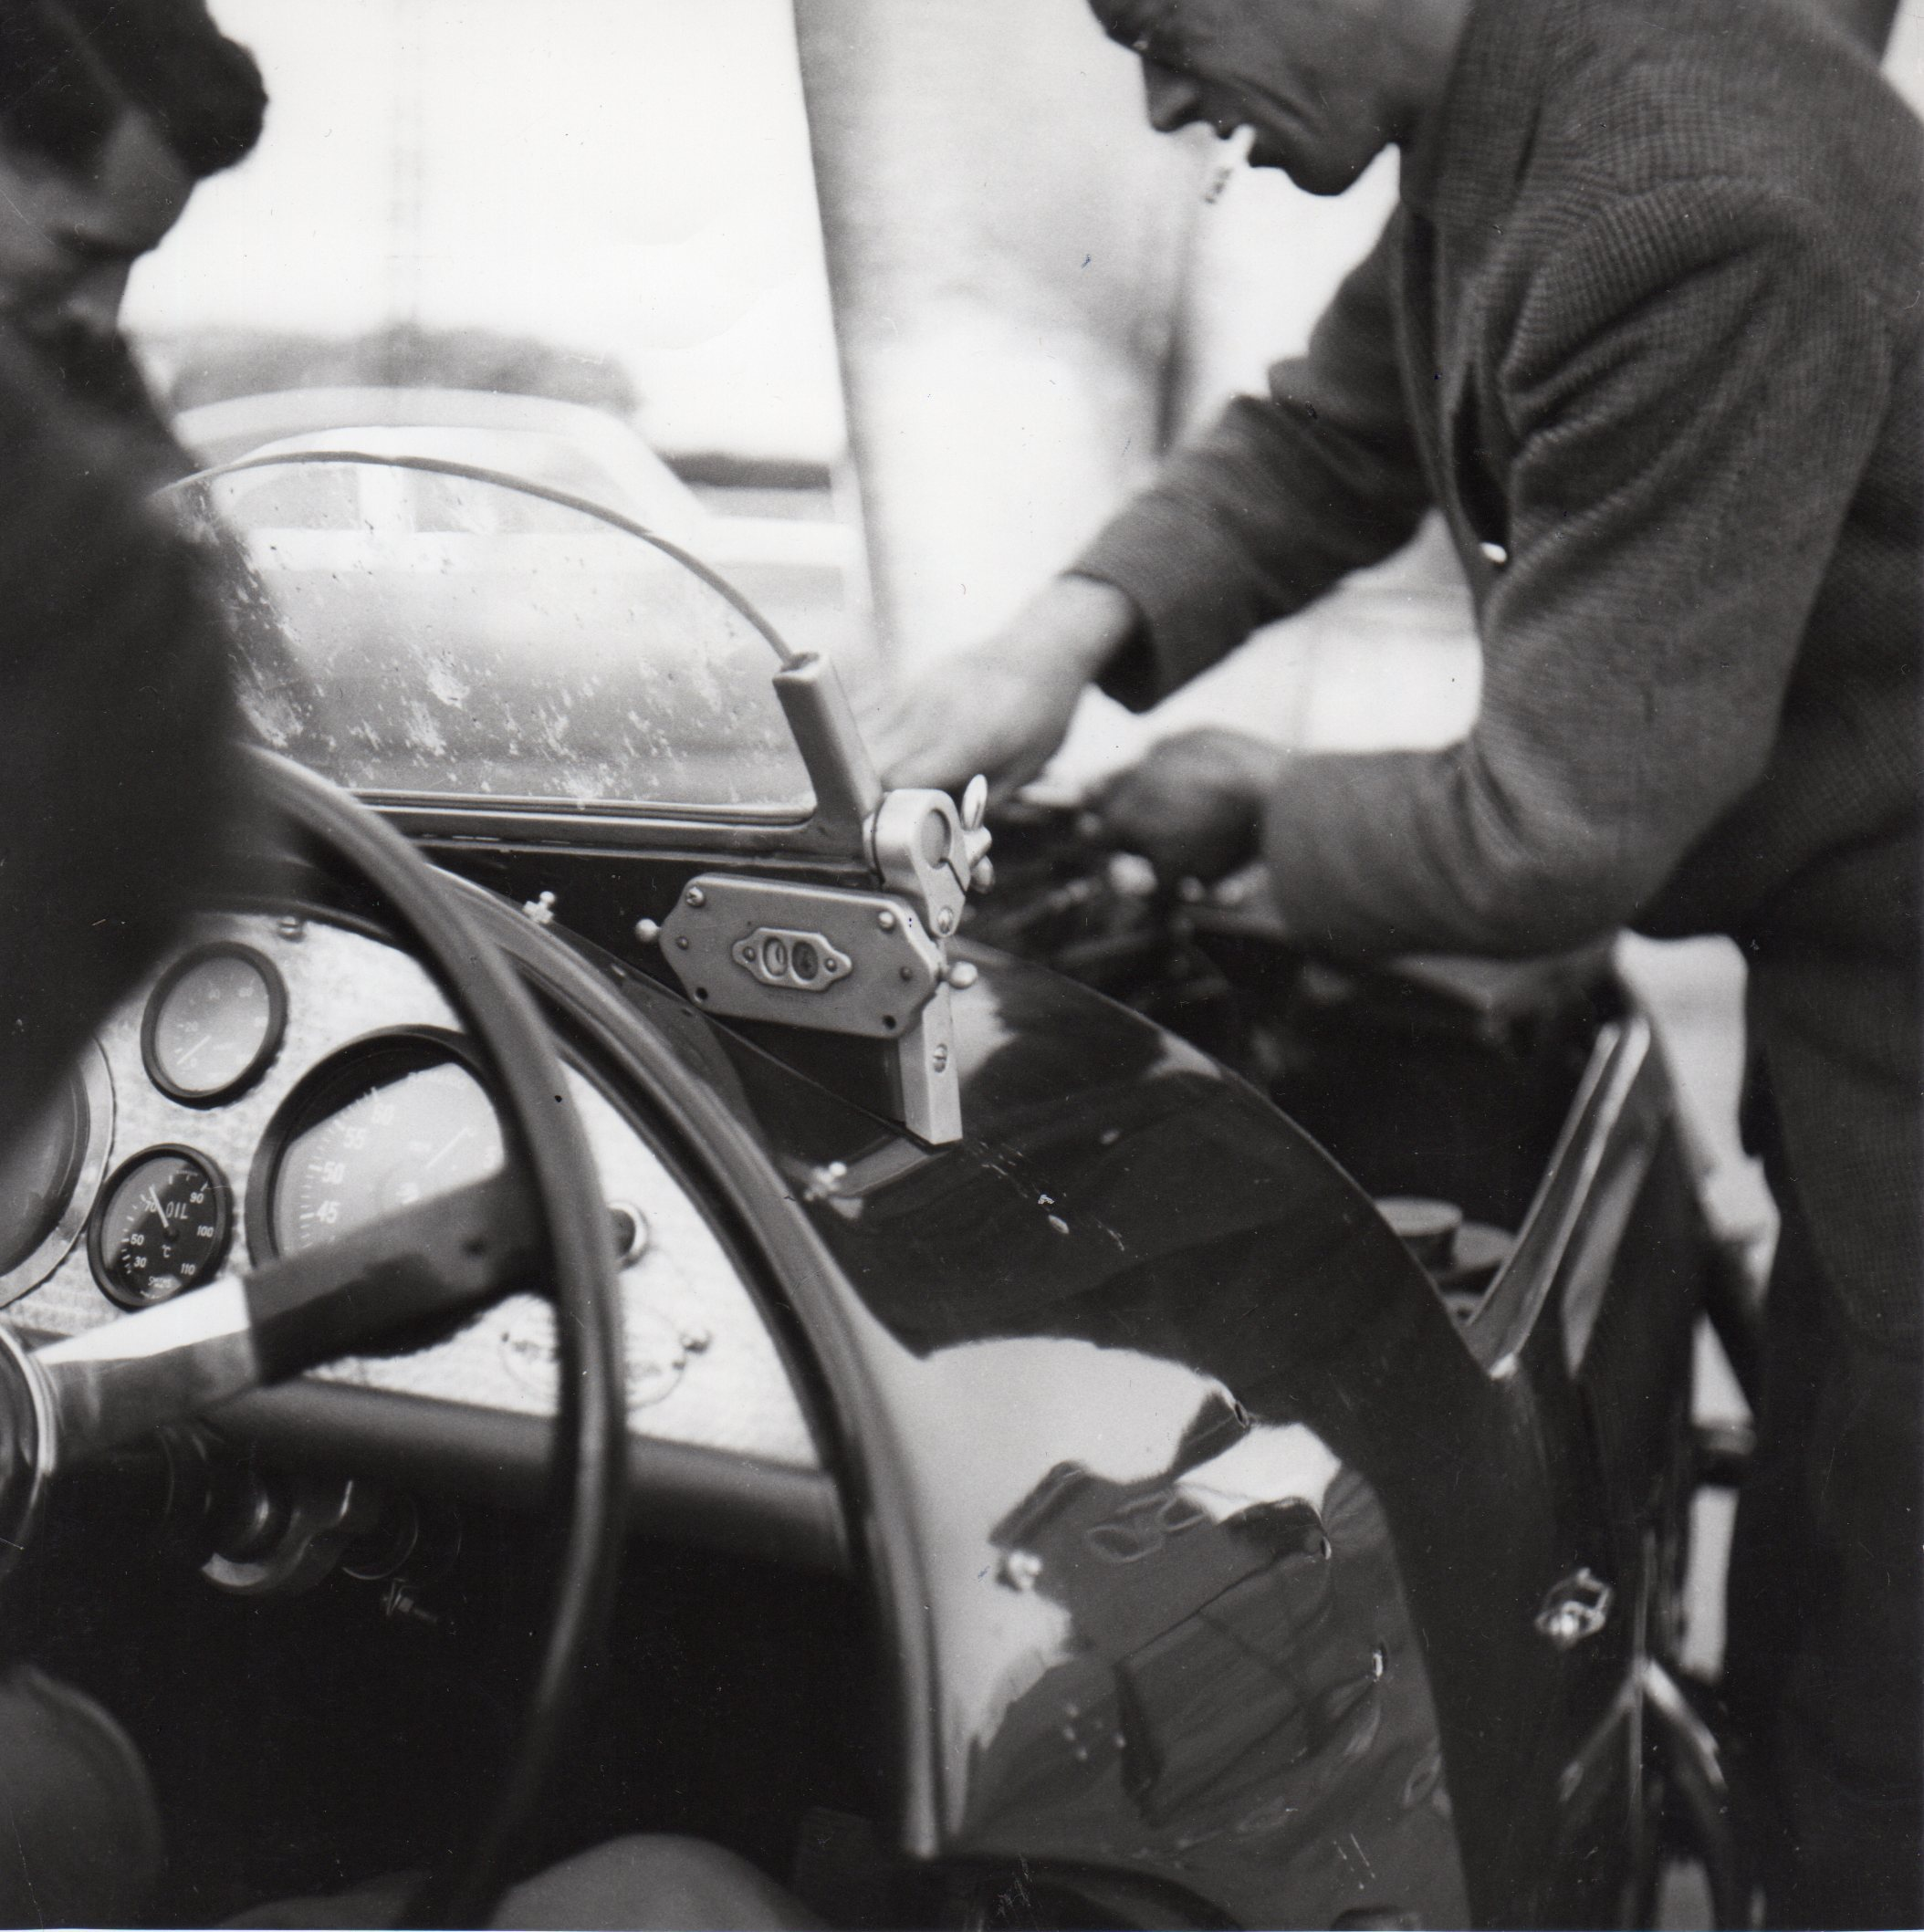 John Dennis working on the Frazer Nash